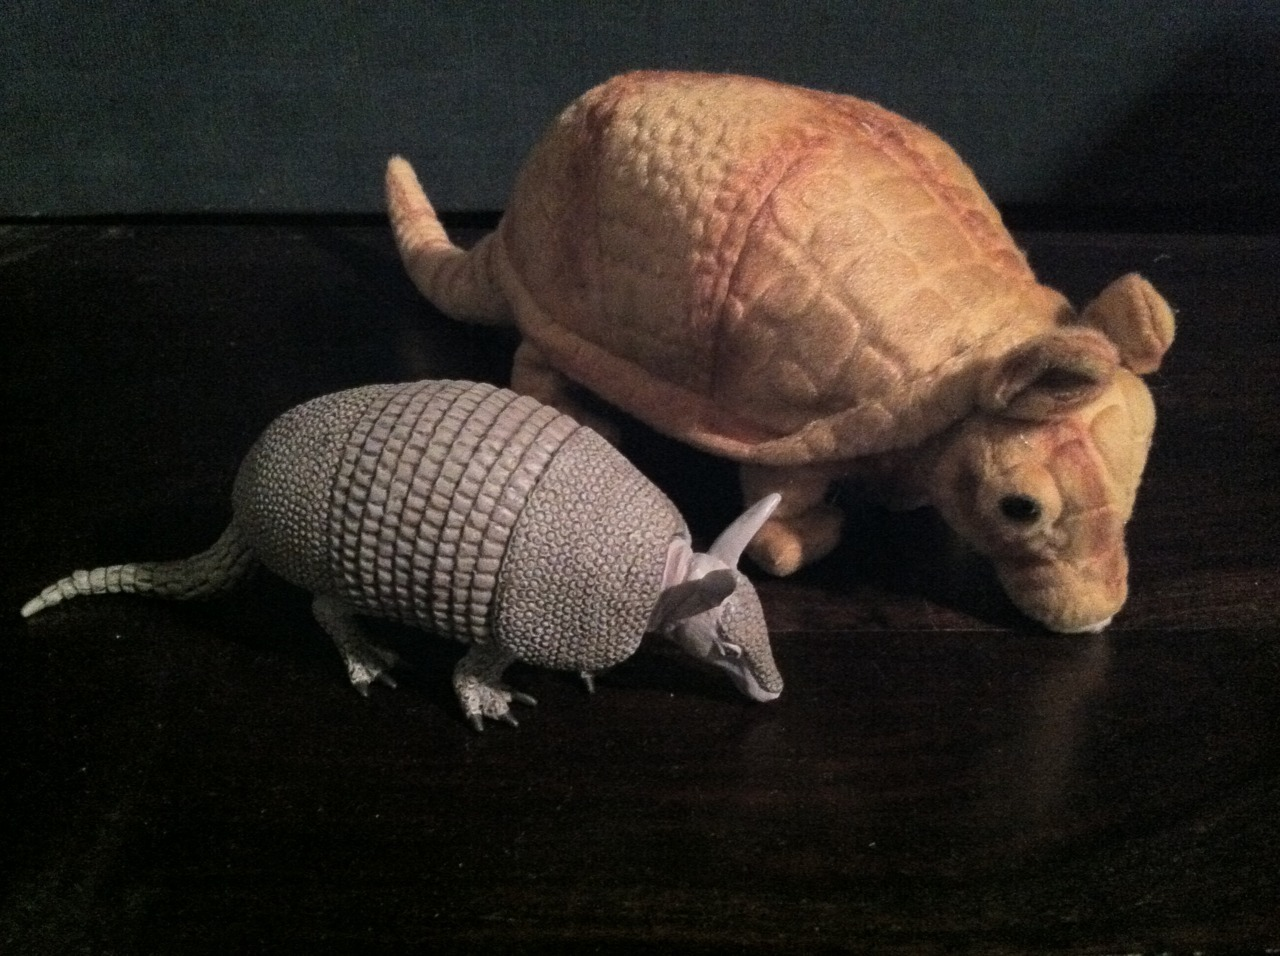 You can find us any Friday by finding these armadillos (at Mozart's). The prior armadillo(s) shattered if dropped, and I dropped them. I got these instead. They'll do just fine. Also feel free to bring your own anytime. For background, see here; here; and here.